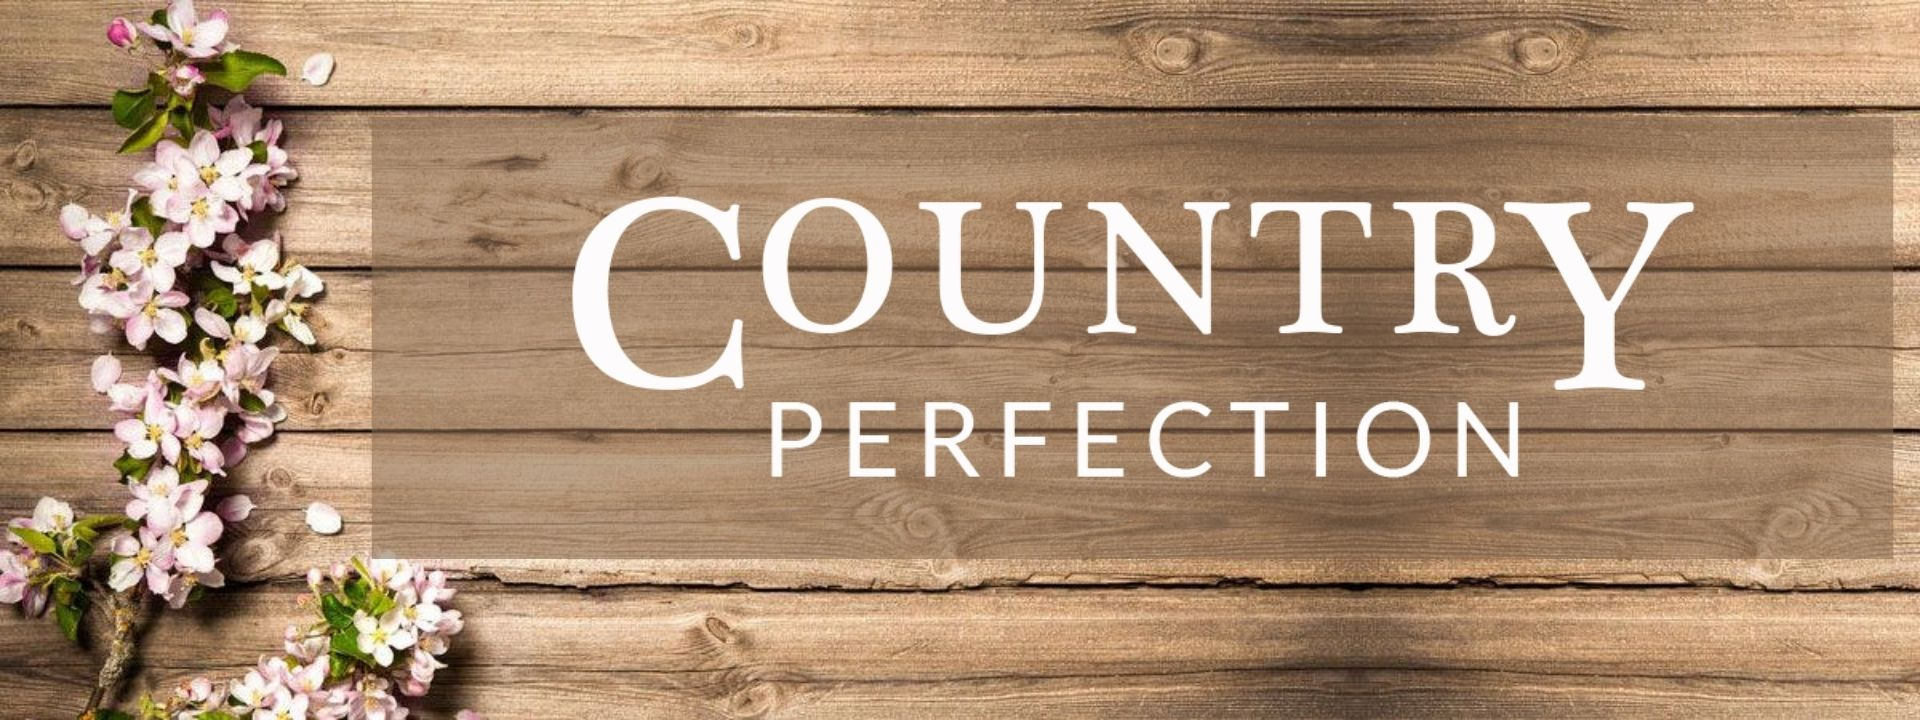 Country Perfection Banner